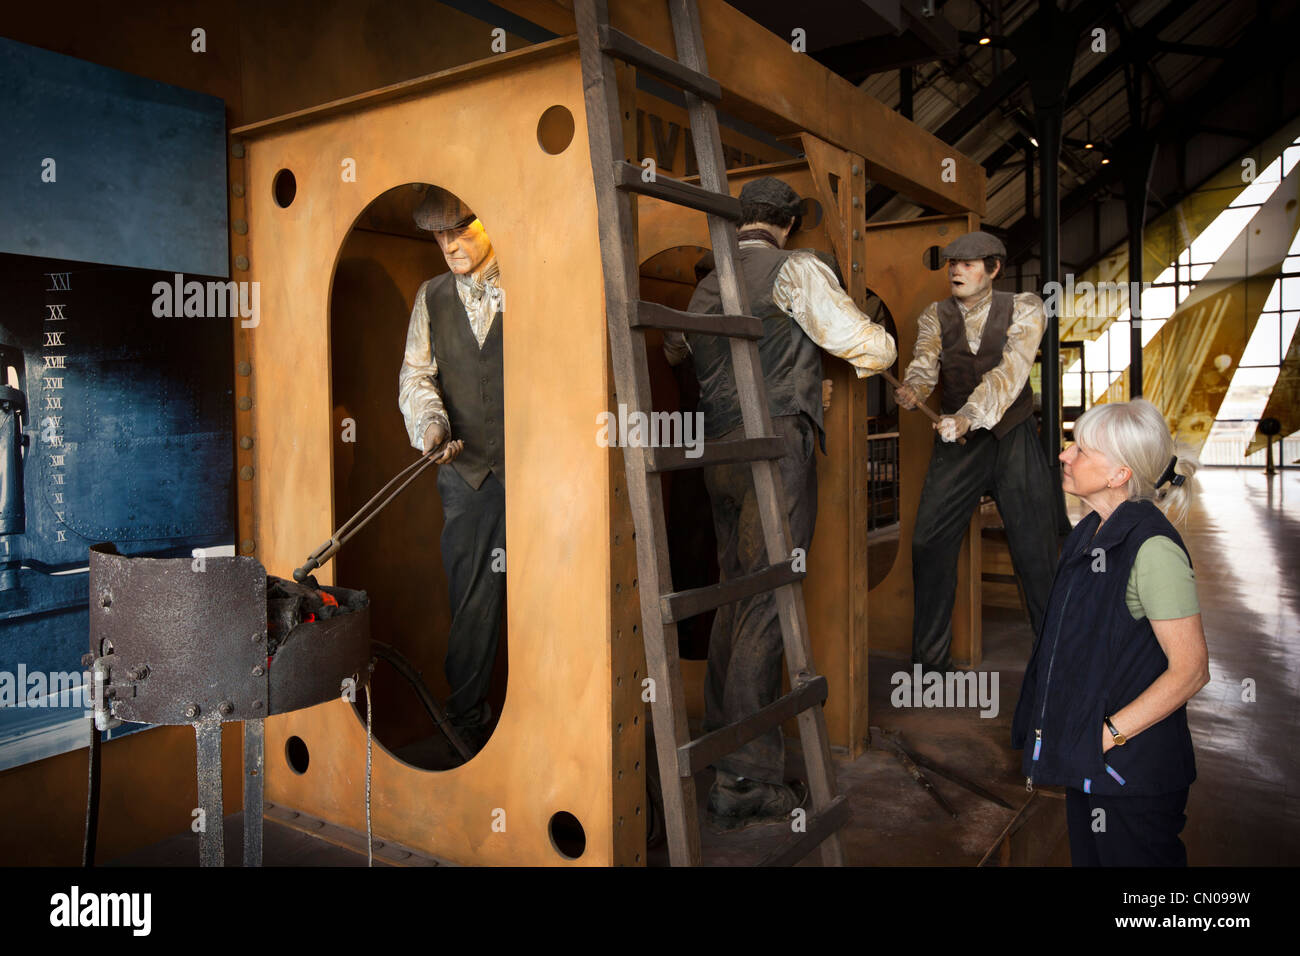 UK, Cumbria, Barrow in Furness, Dock Museum, shipbuilding exhibition, female visitor looking at riveting tableau - Stock Image